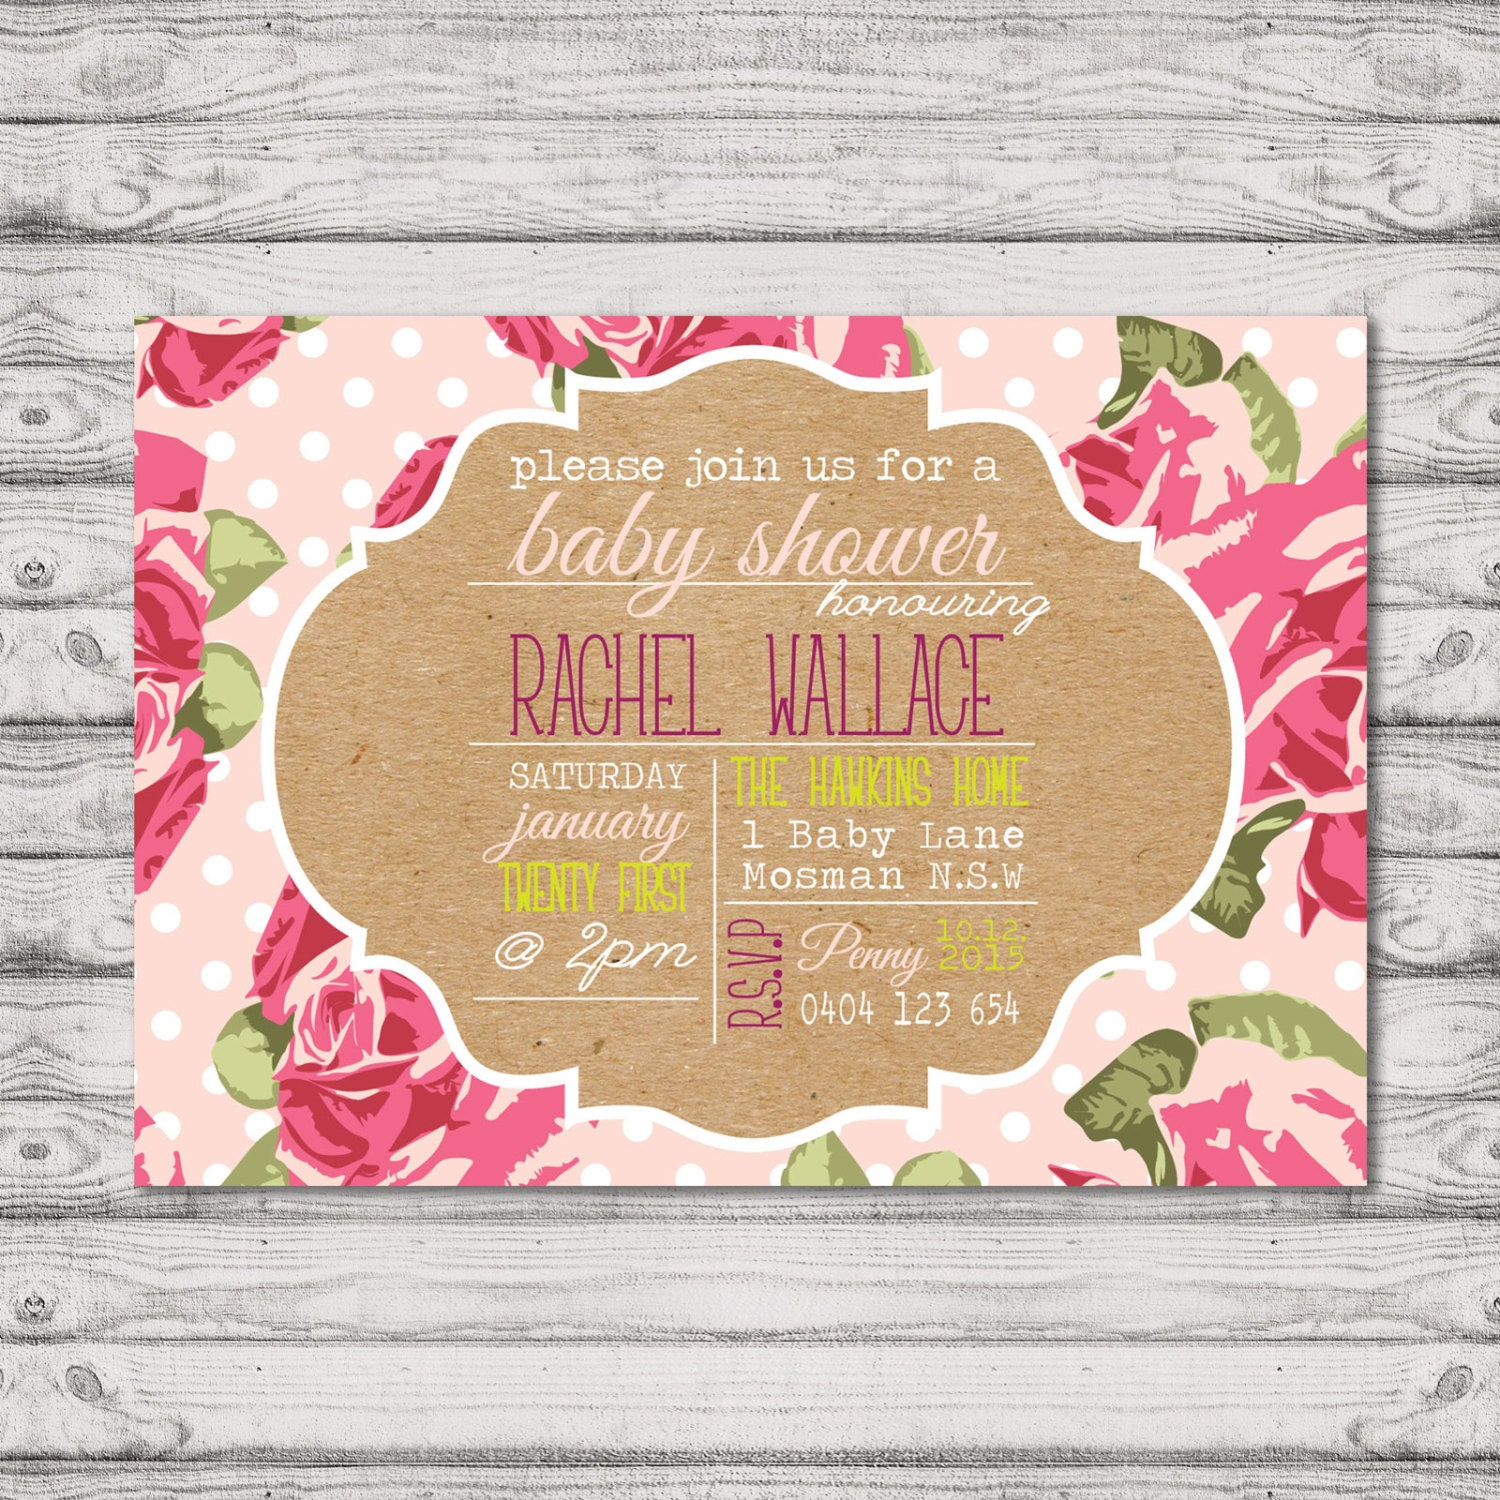 Floral baby shower invitation print at home file or printed floral baby shower invitation print at home file or printed invitations pink dots filmwisefo